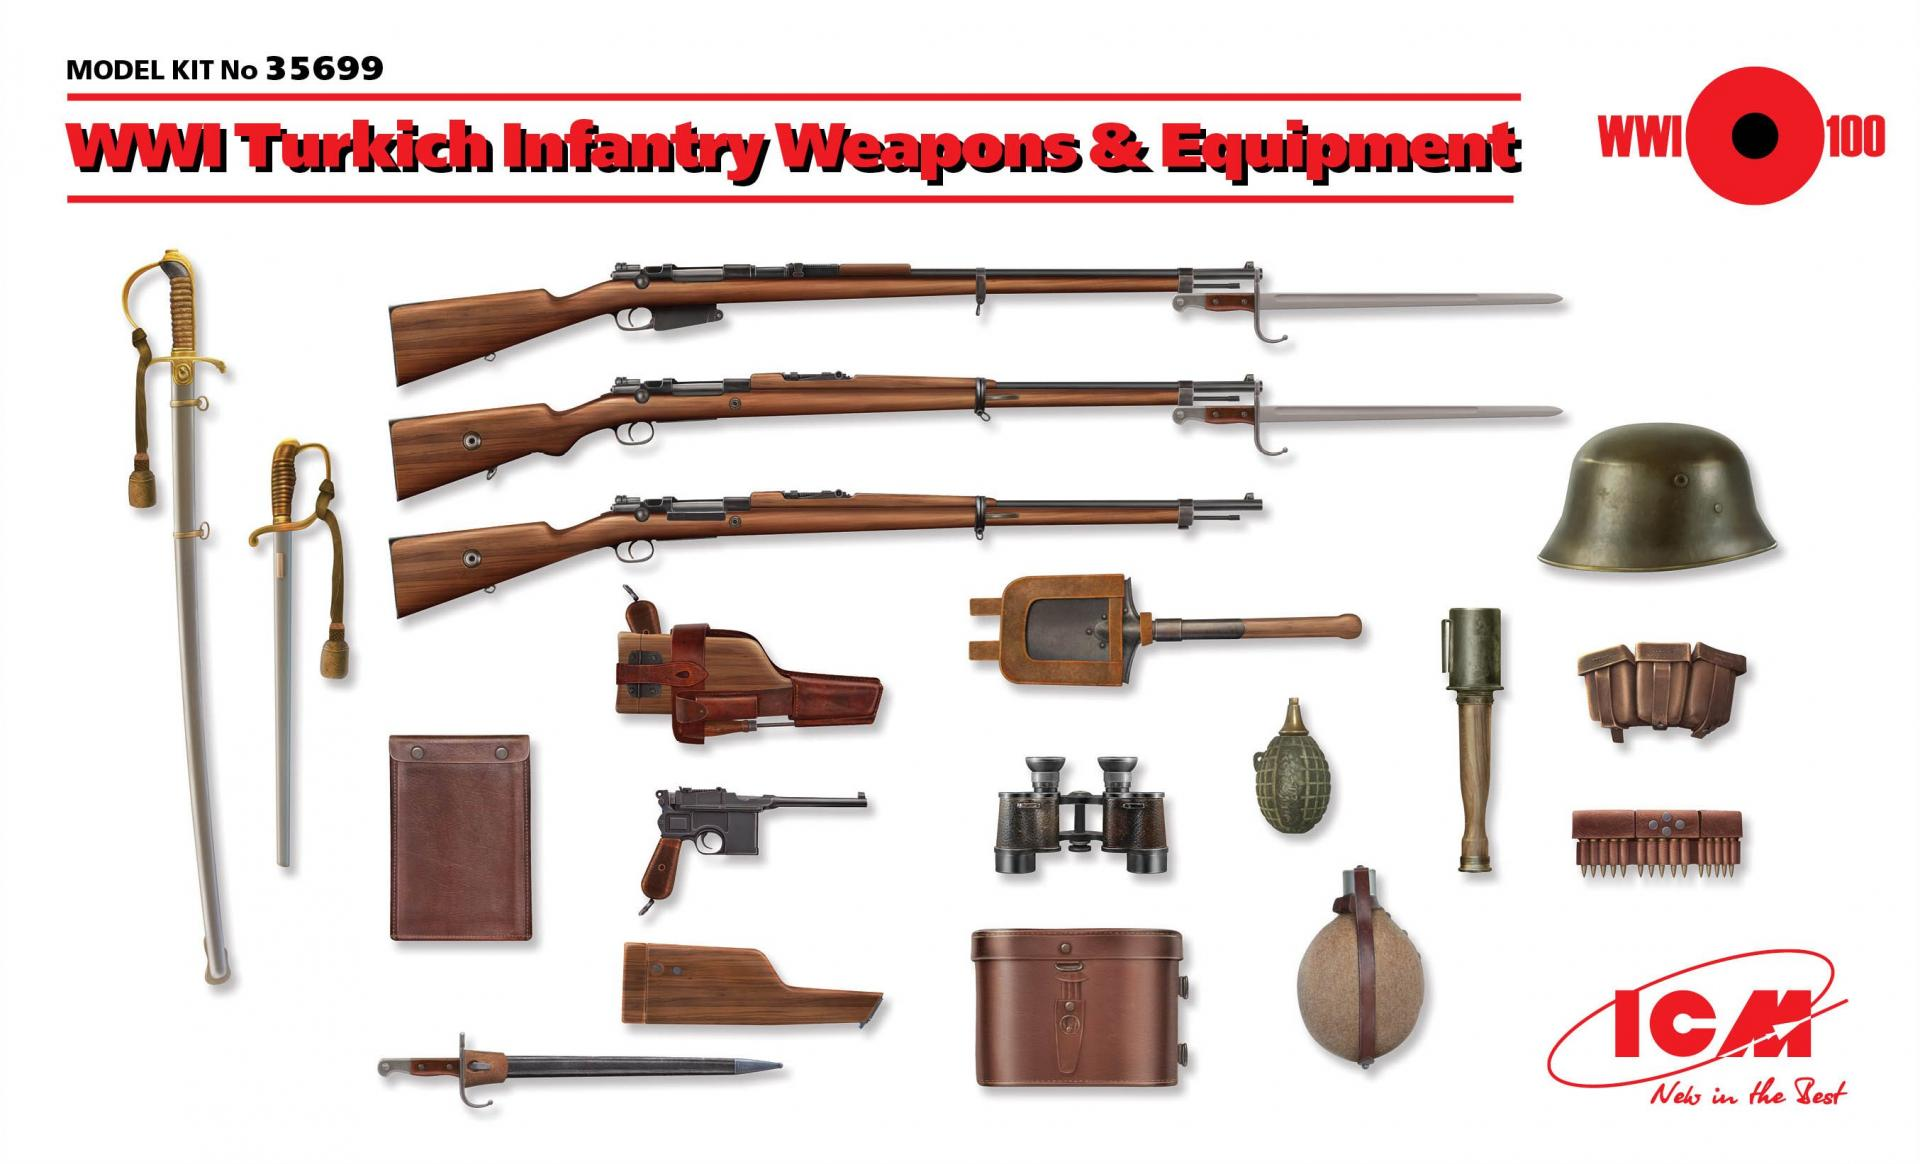 1/35 WWI Turkish Infantry Weapons & Equipment